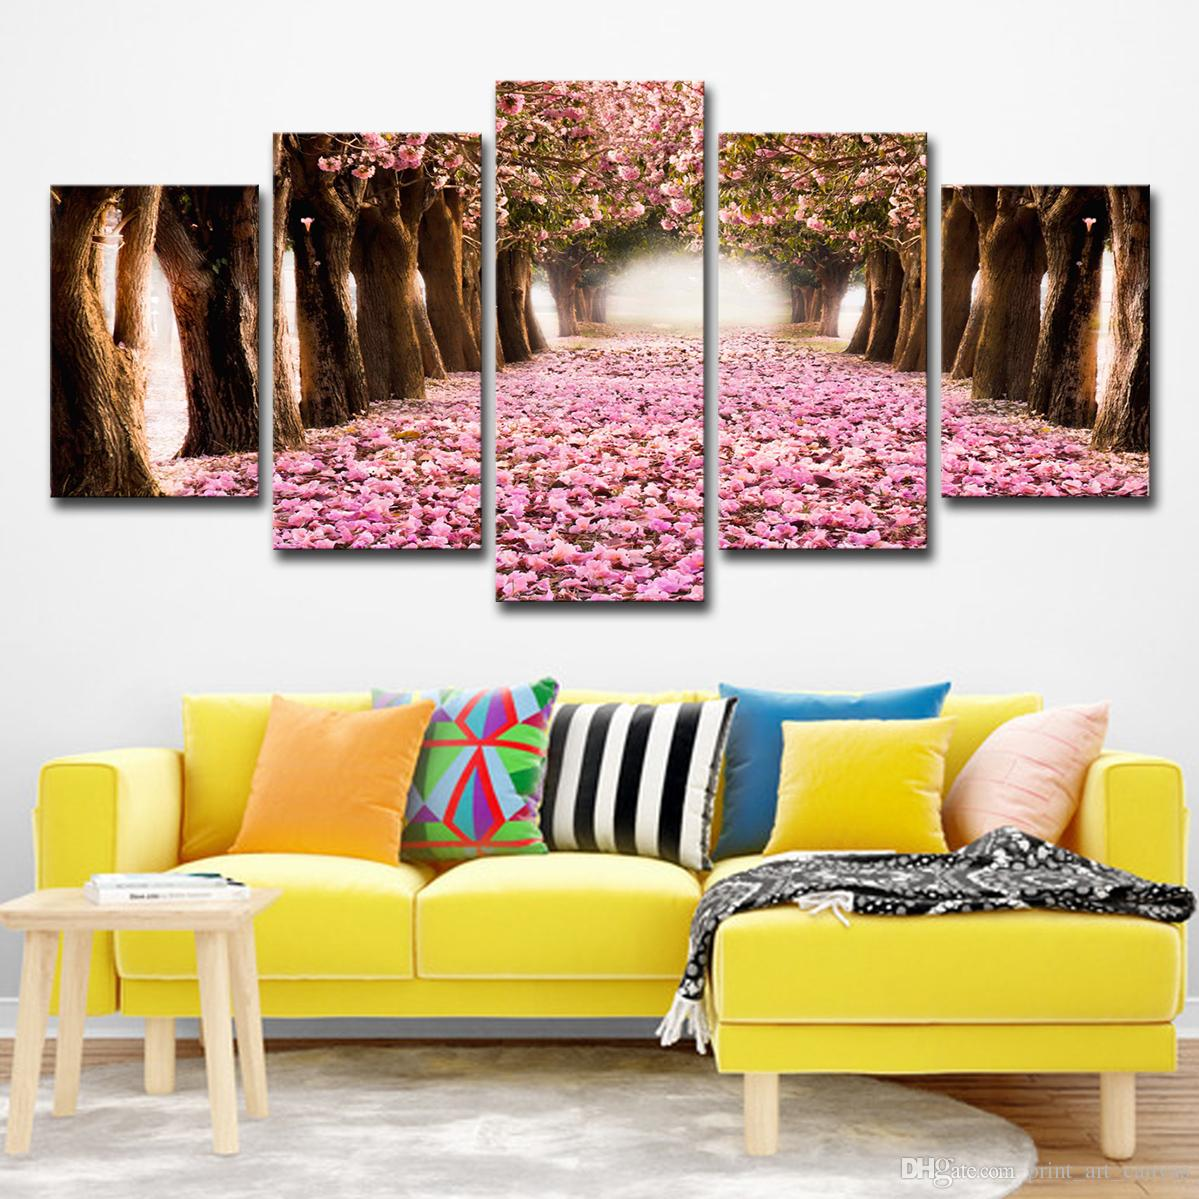 Canvas Pictures Home Decor HD Prints 5 Pieces Cherry Blossoms Paintings Pink Flower Petal Tree Poster Living Room Wall Art